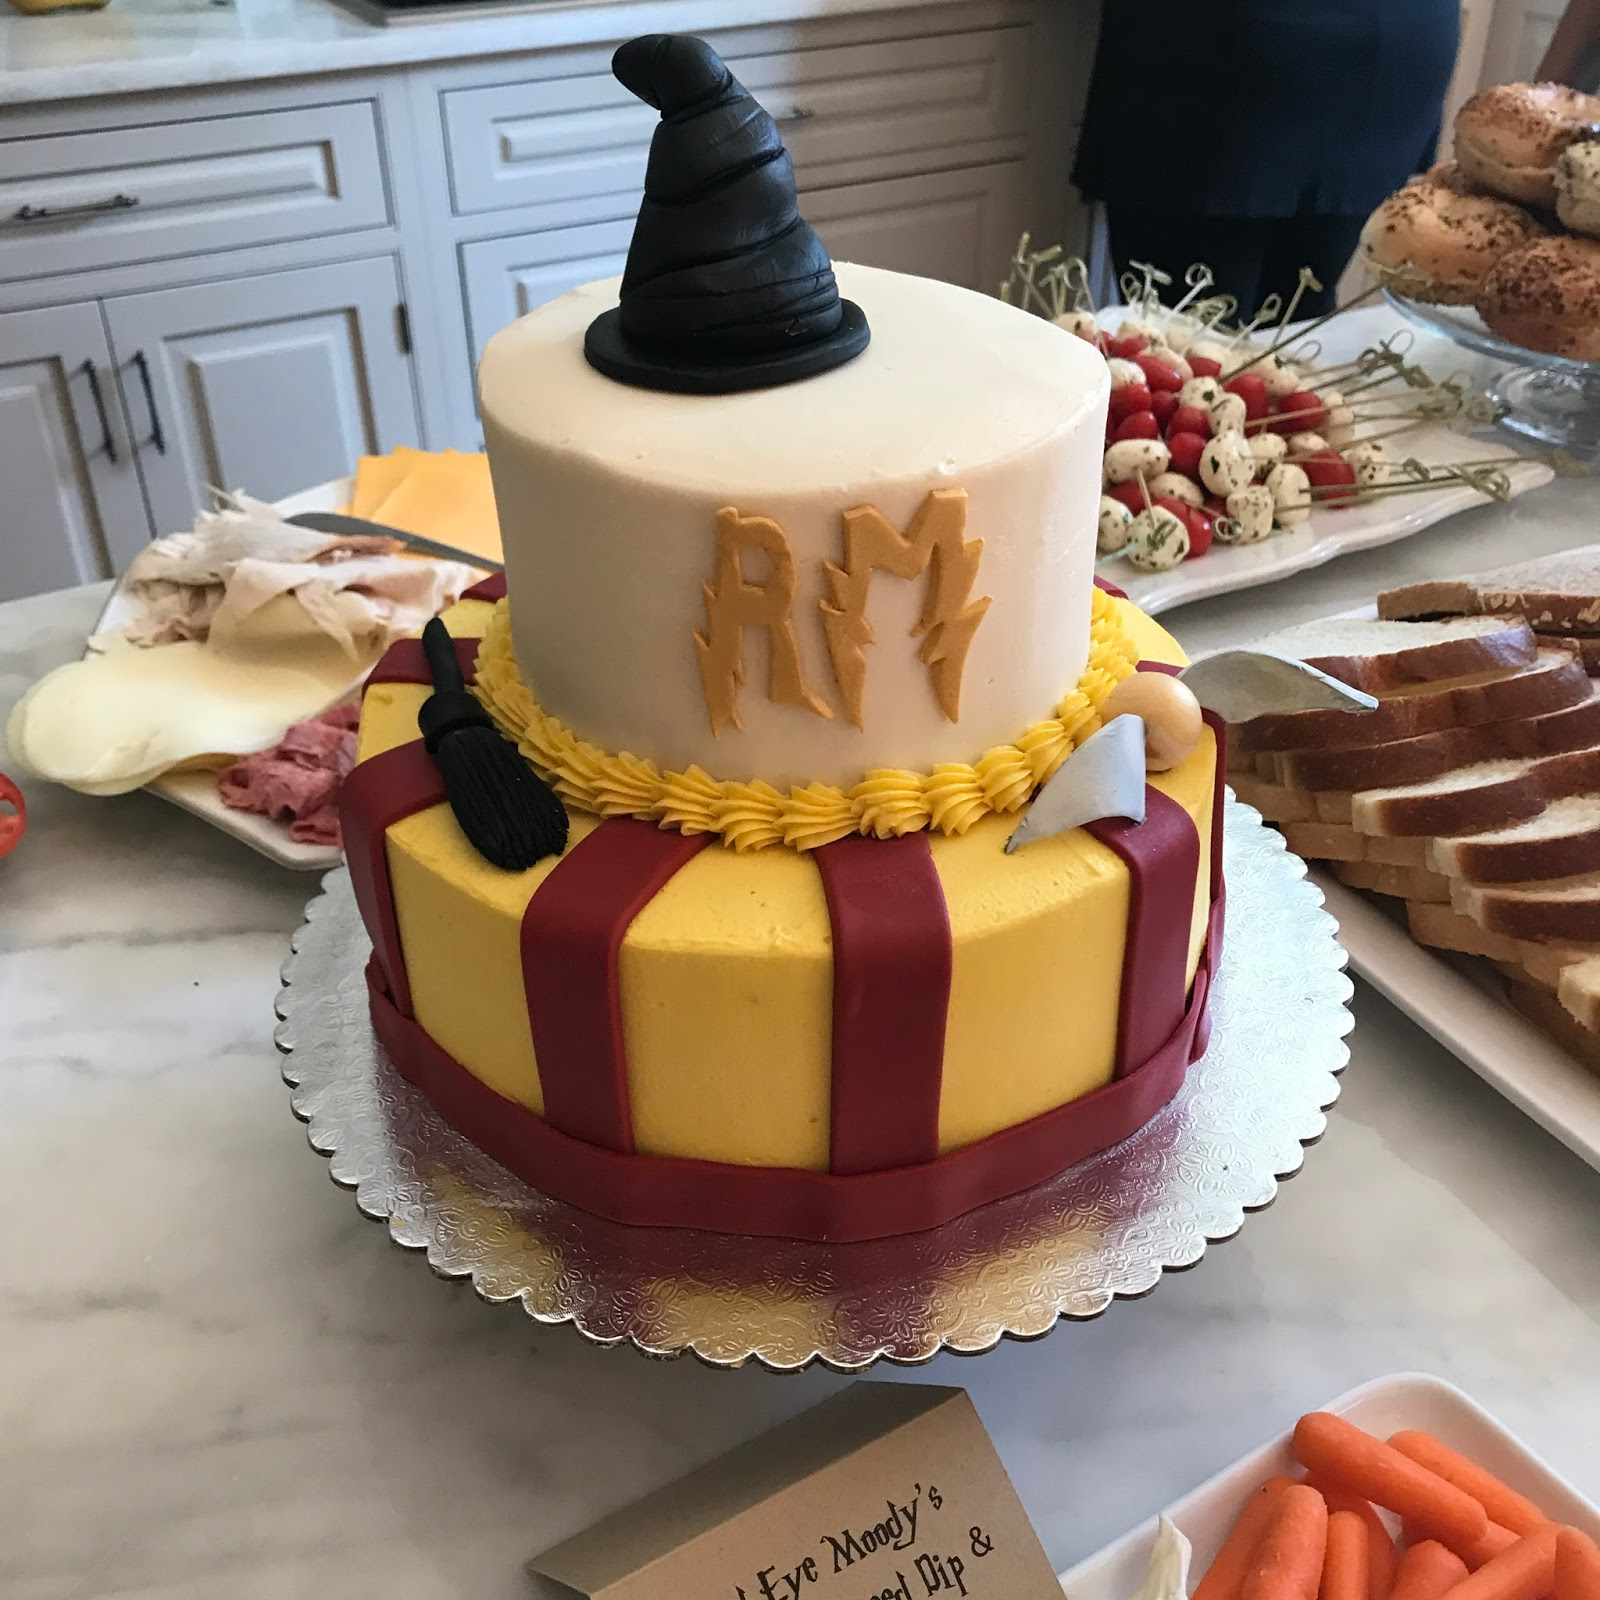 HOWEVER!! I Did Recently Have The Opportunity To Order A Super Cool Fancy  Cake ... I Co Hosted A Harry Potter Themed Baby Shower ... Now Look At This  ...